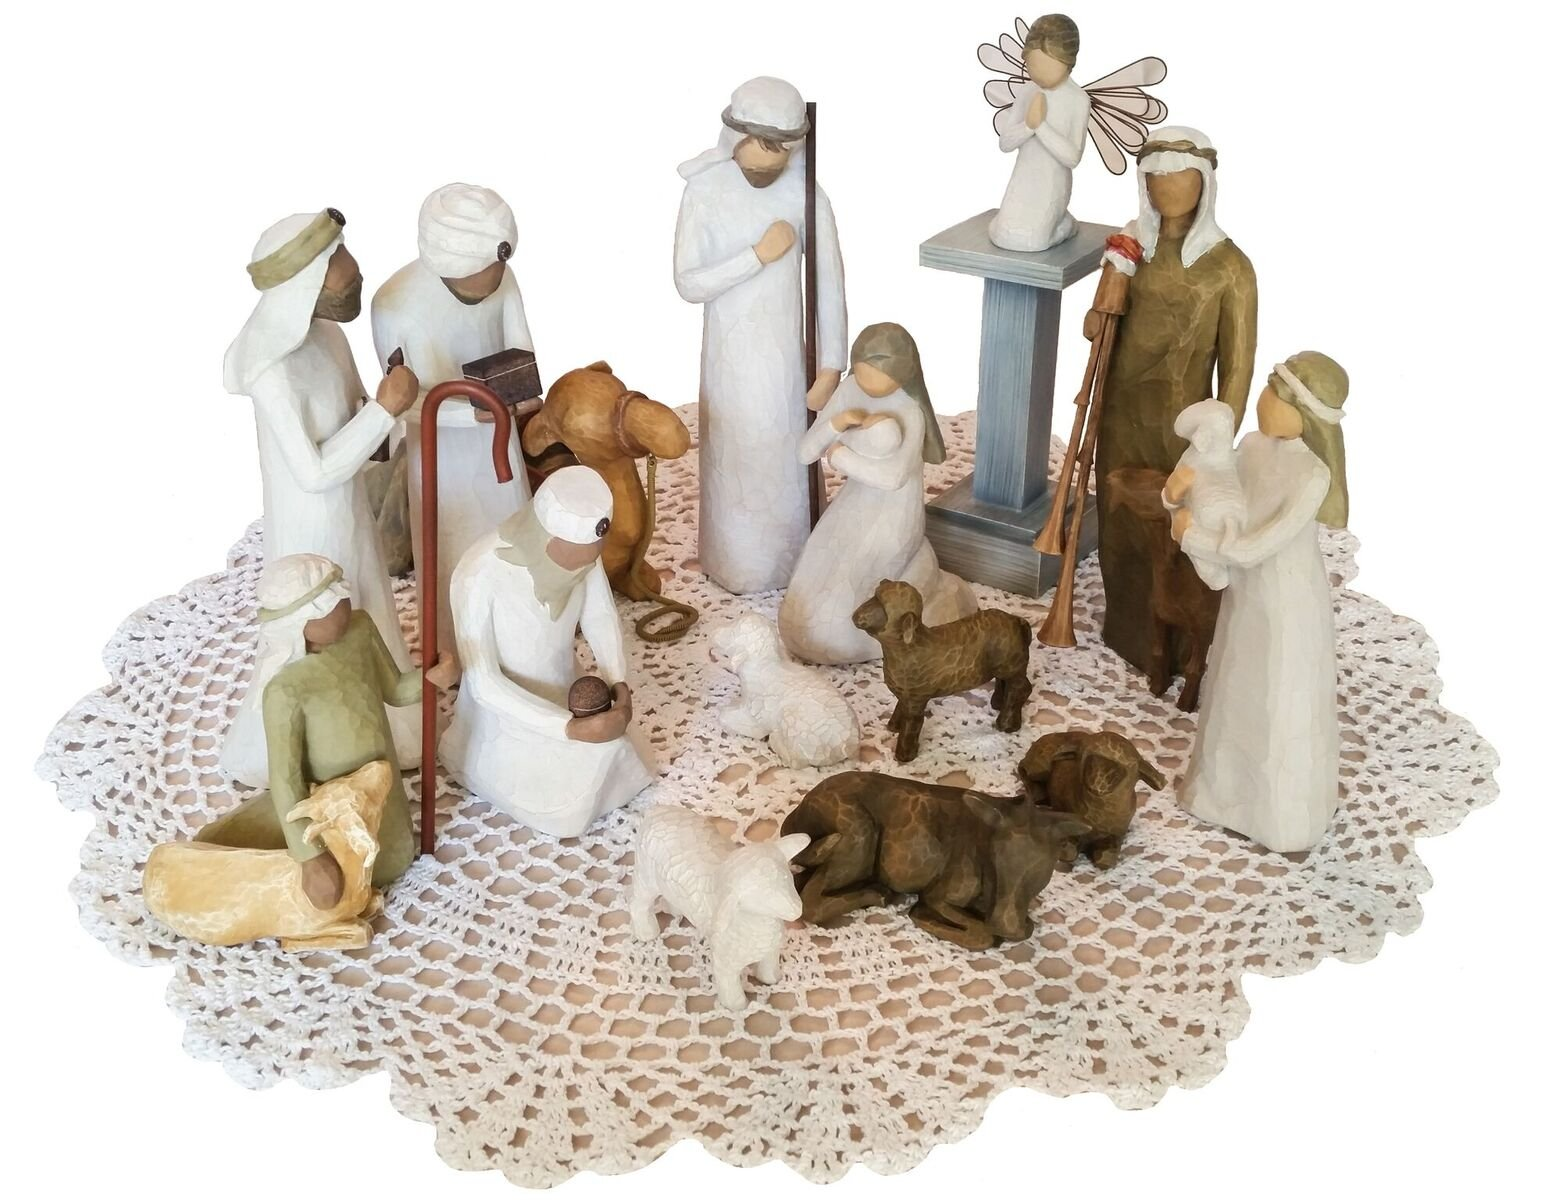 Willow Tree Christmas Themed Figurines with Westbraid Doily (Nativity Scene Bundle)